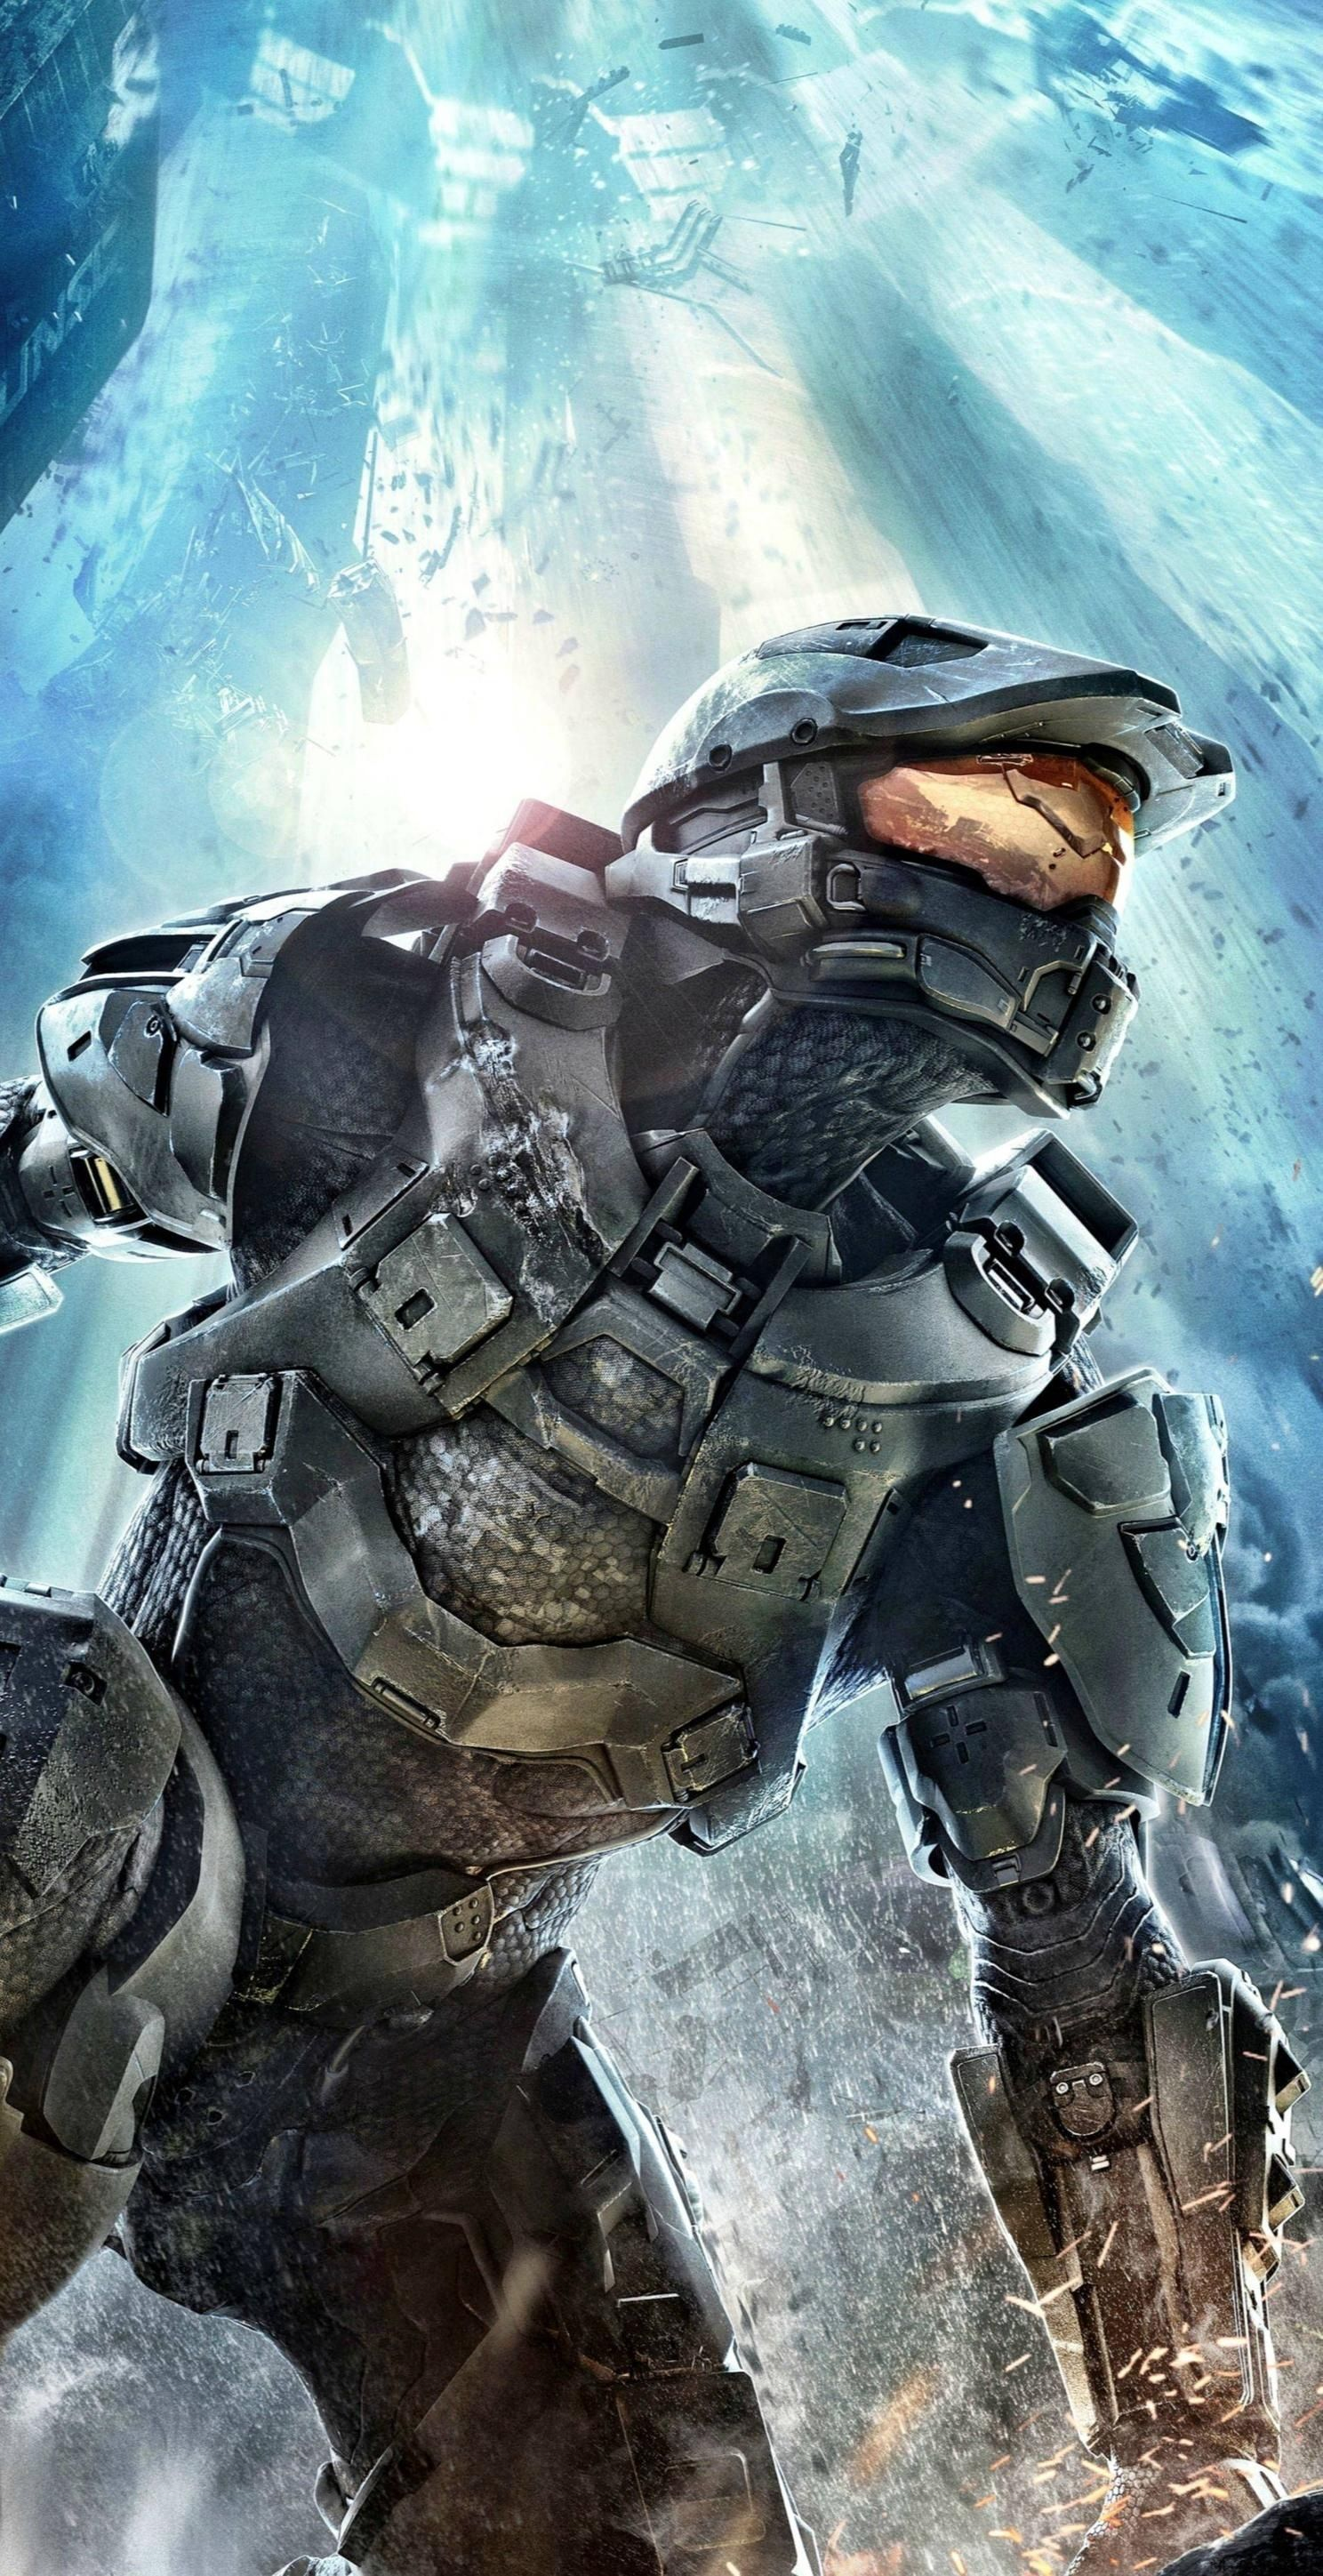 Halo 4 Wallpaper For Iphone   Halo Wallpaper Iphone 2208177 1488x2897